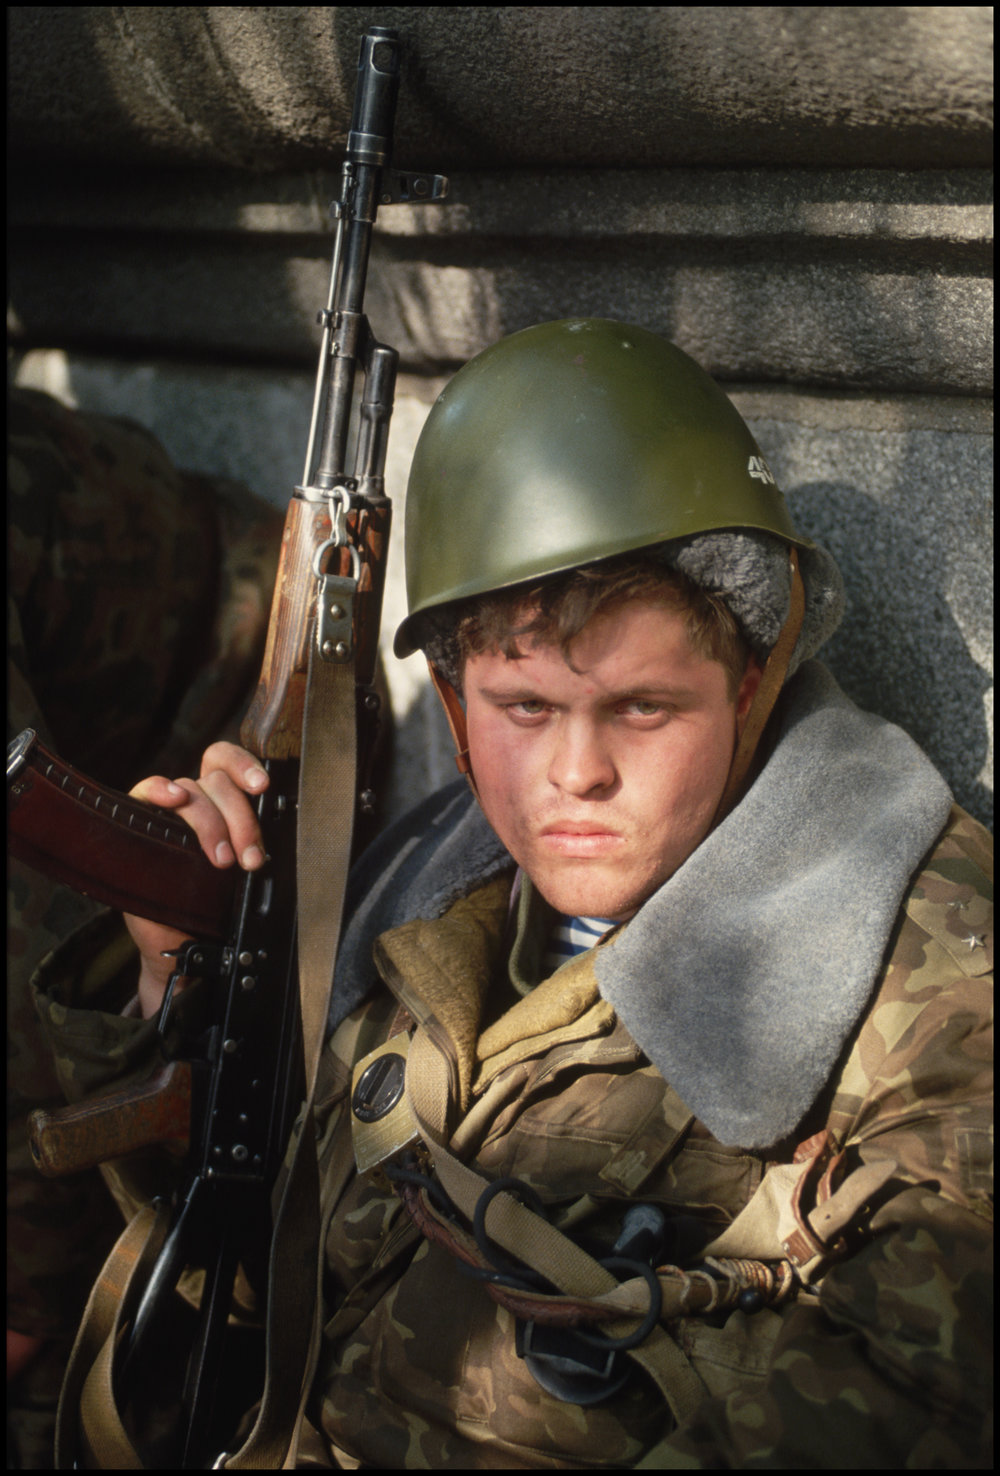 4 Oct 1993, Moscow, Russia --- Pro-Yeltsin soldier during the siege on the Russian Parliament in which Pro-Yeltsin forces fired on the parliament building in order to force out Communist hard liners